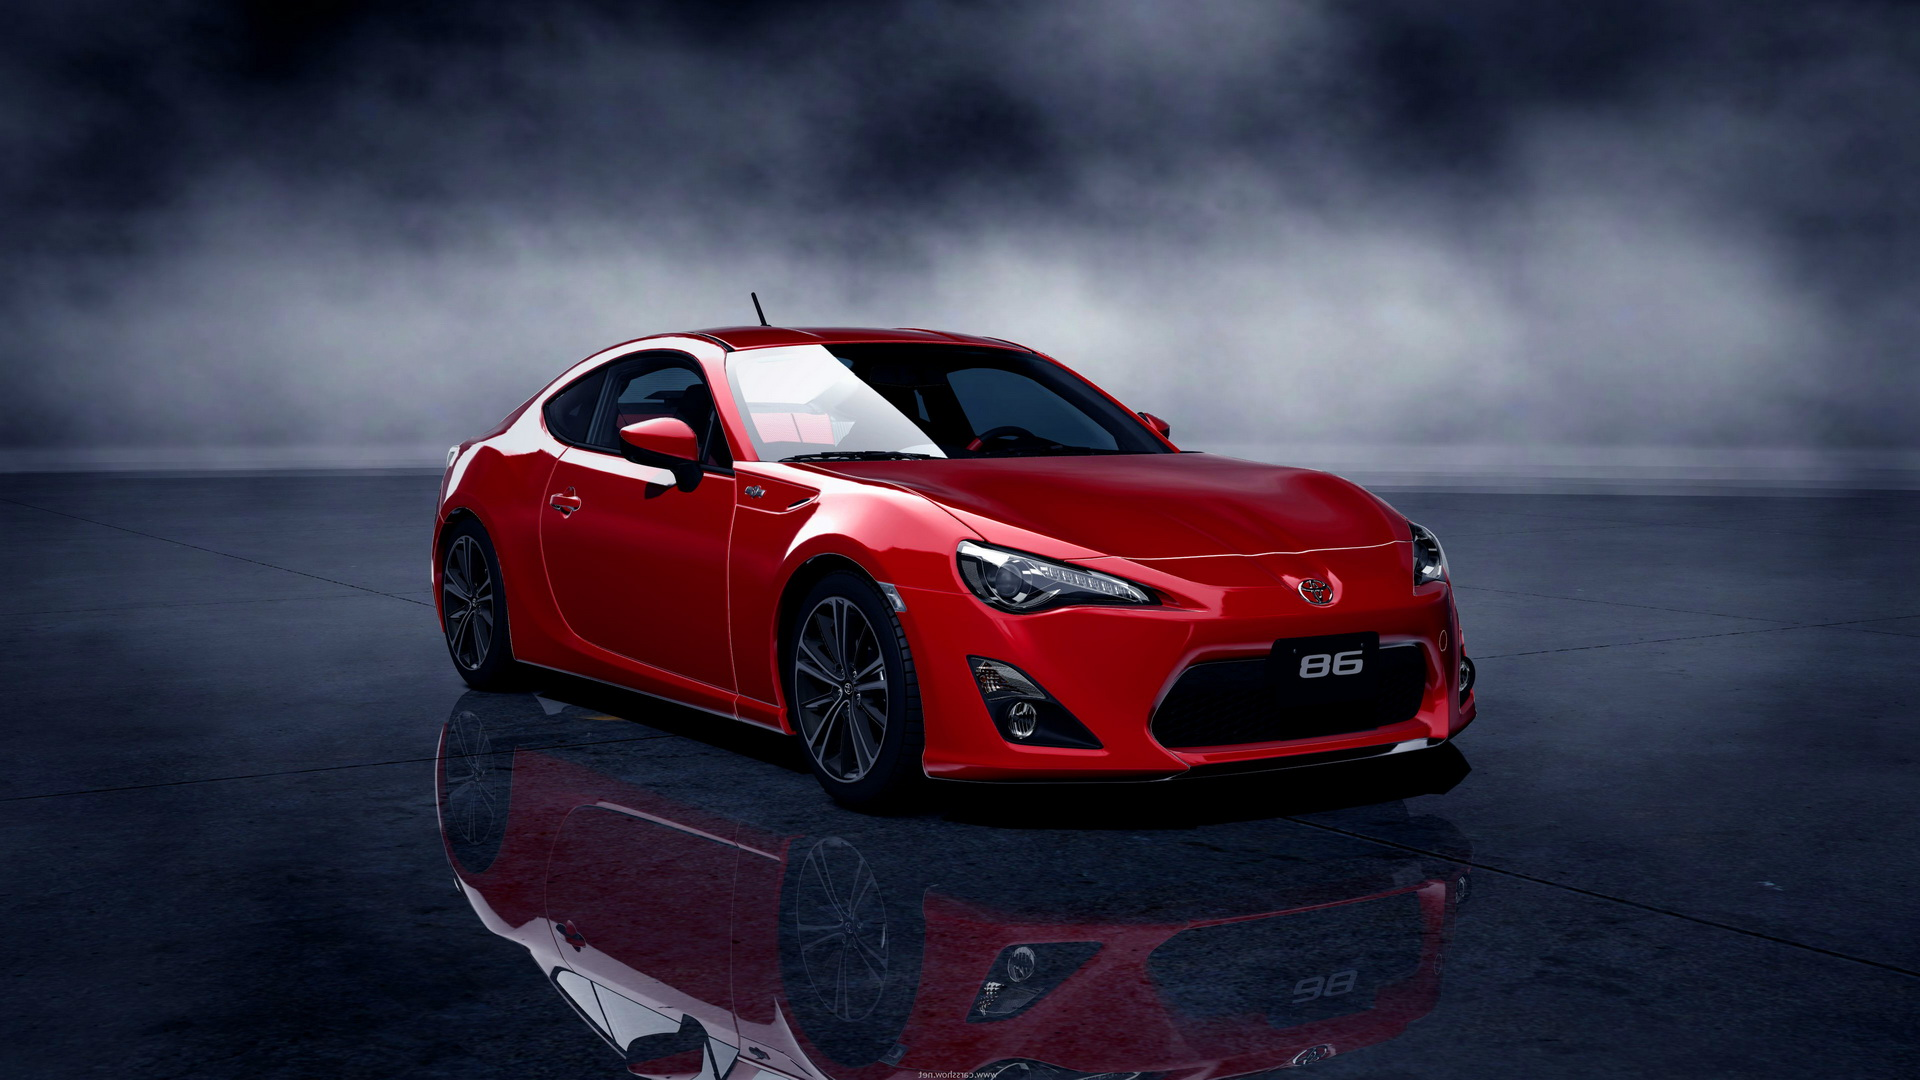 toyota gt 86 wallpapers high quality download free. Black Bedroom Furniture Sets. Home Design Ideas